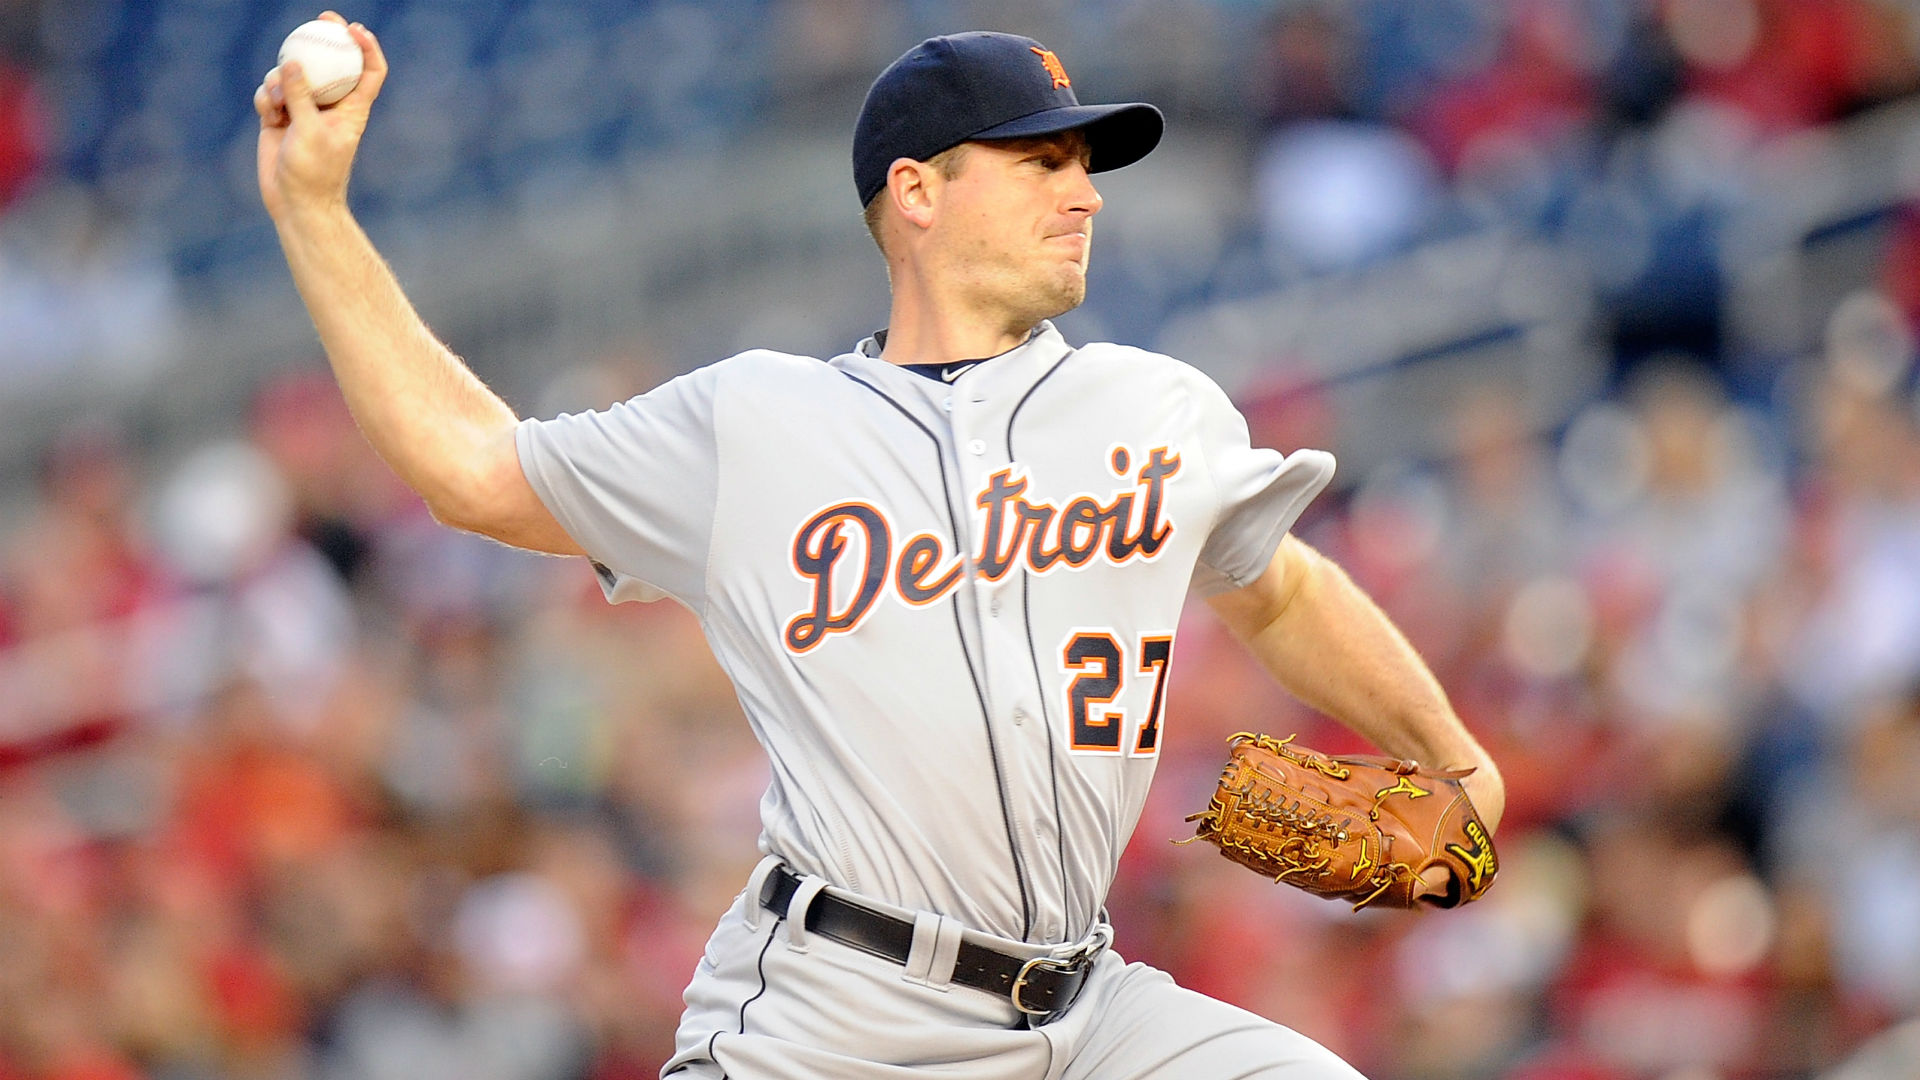 Tigers starter Jordan Zimmermann hit in face by line drive